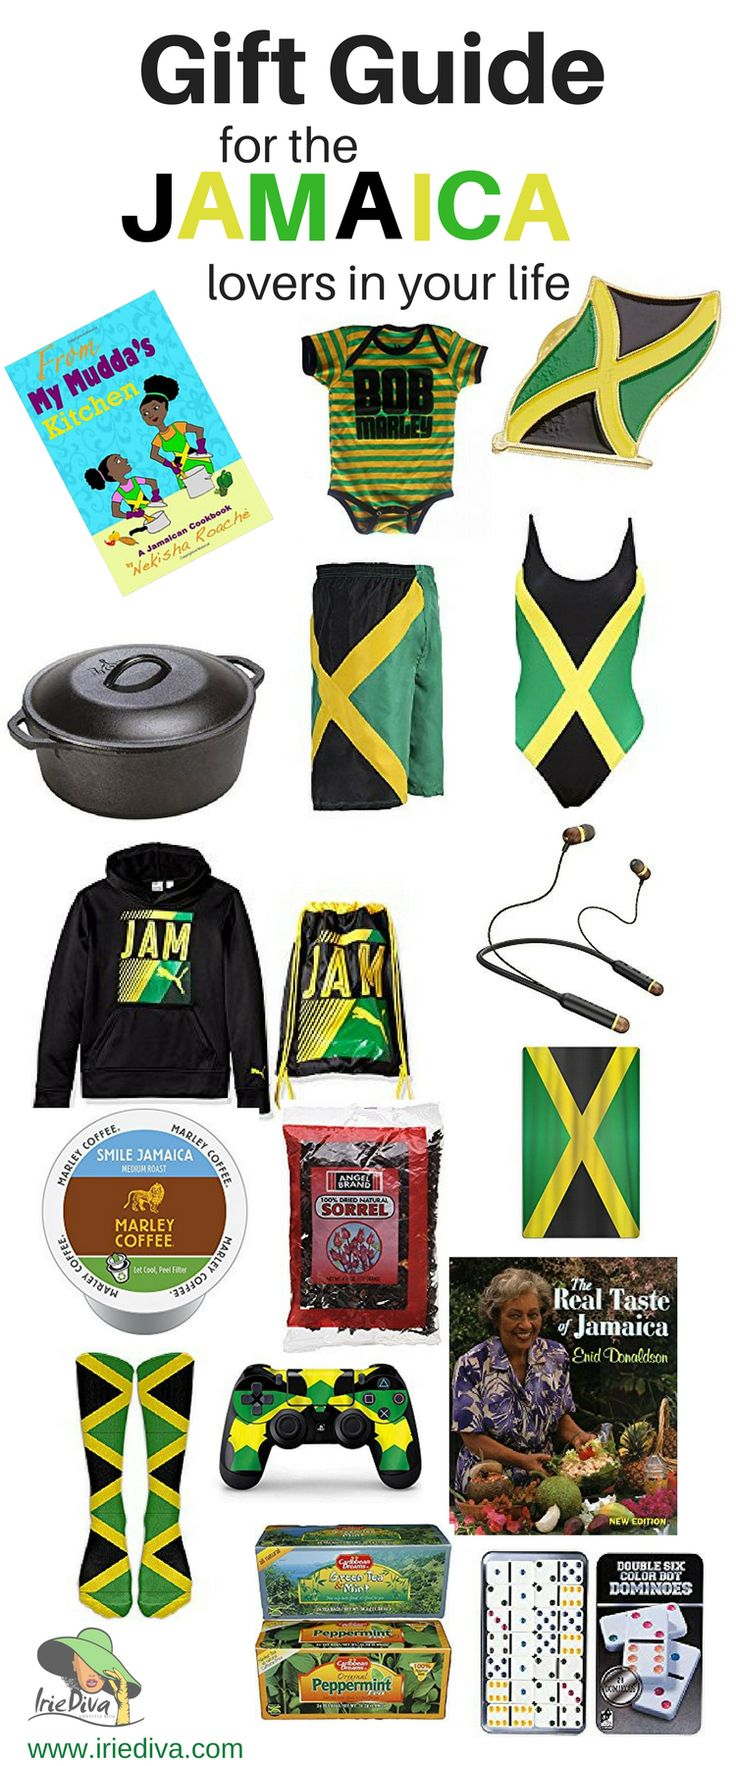 Gift ideas for the Jamaican in your life! If you're looking for Jamaican souvenirs or presents to buy for a Jamaican, this gift guide written by a local will guide you to the perfect gifts!